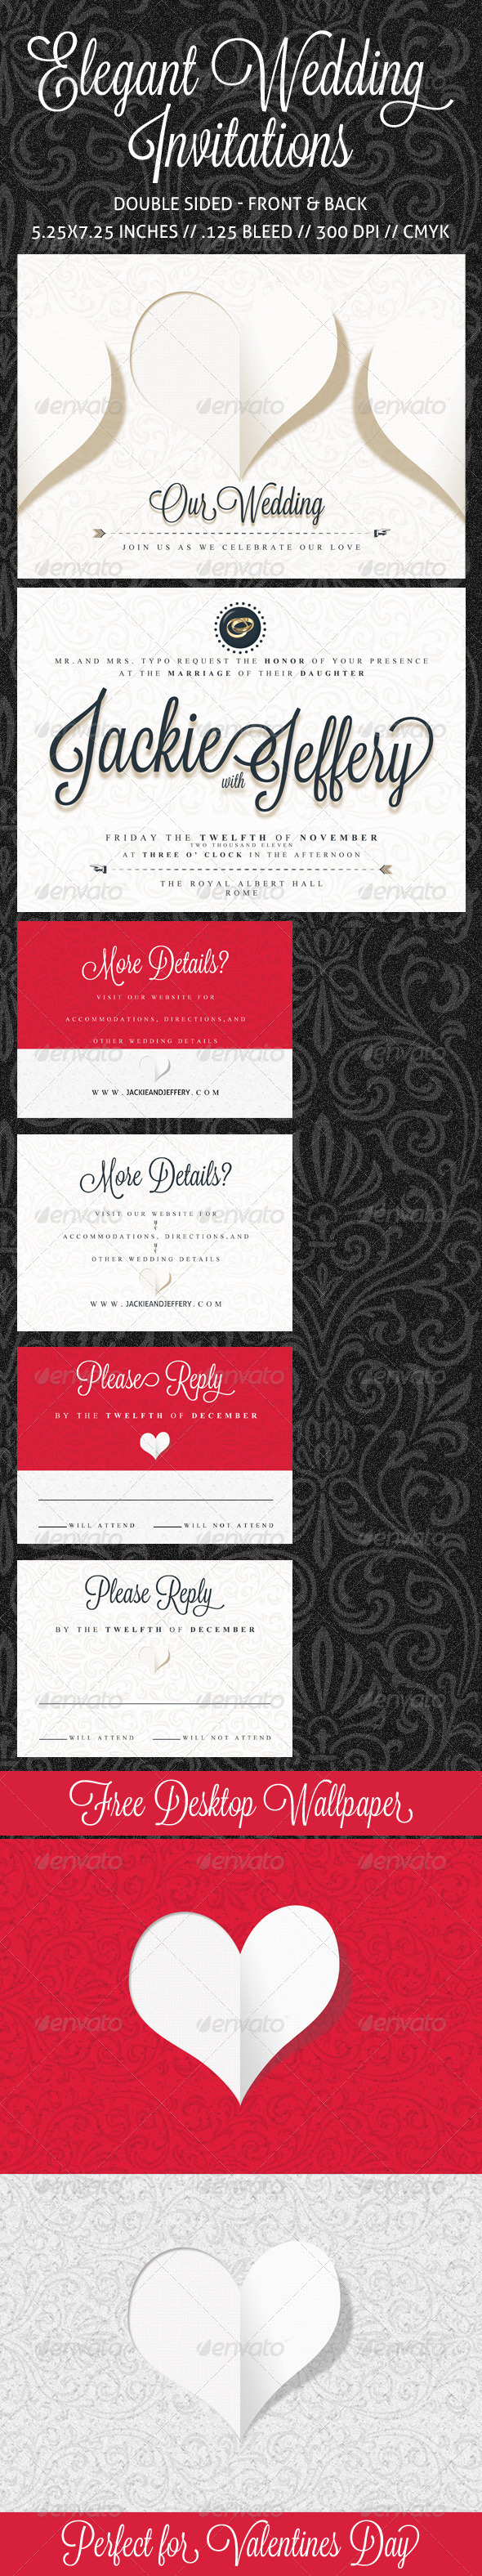 Elegant Wedding Invitation, RSVP and Info Card